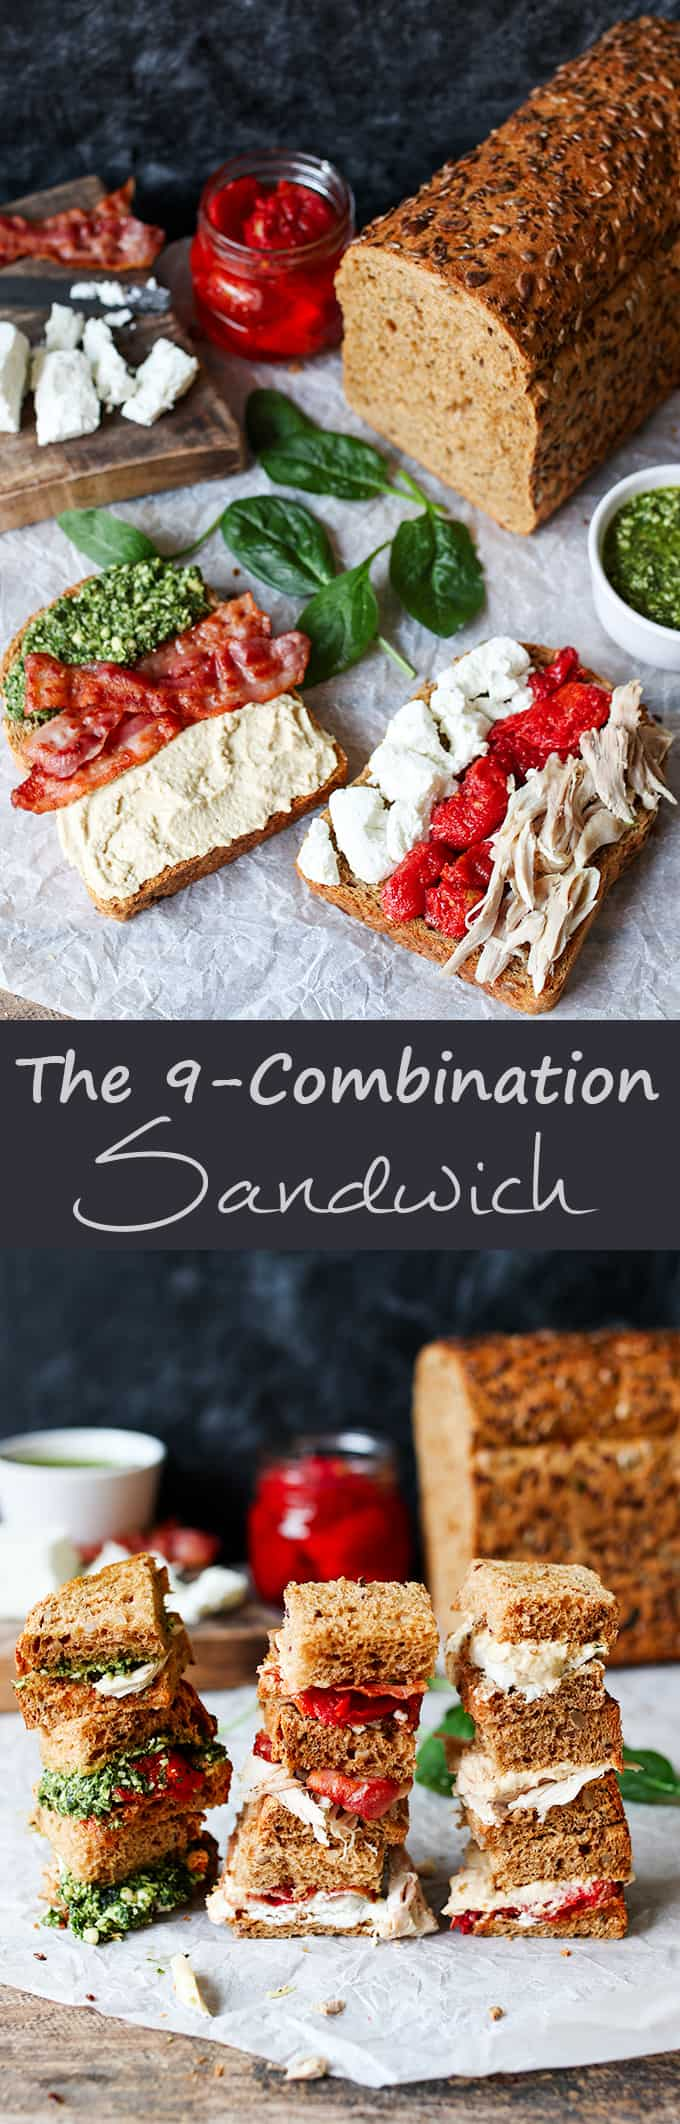 The 9-combination sandwich - Six fillings arranged in a certain way to give you 9 different bites of flavour!